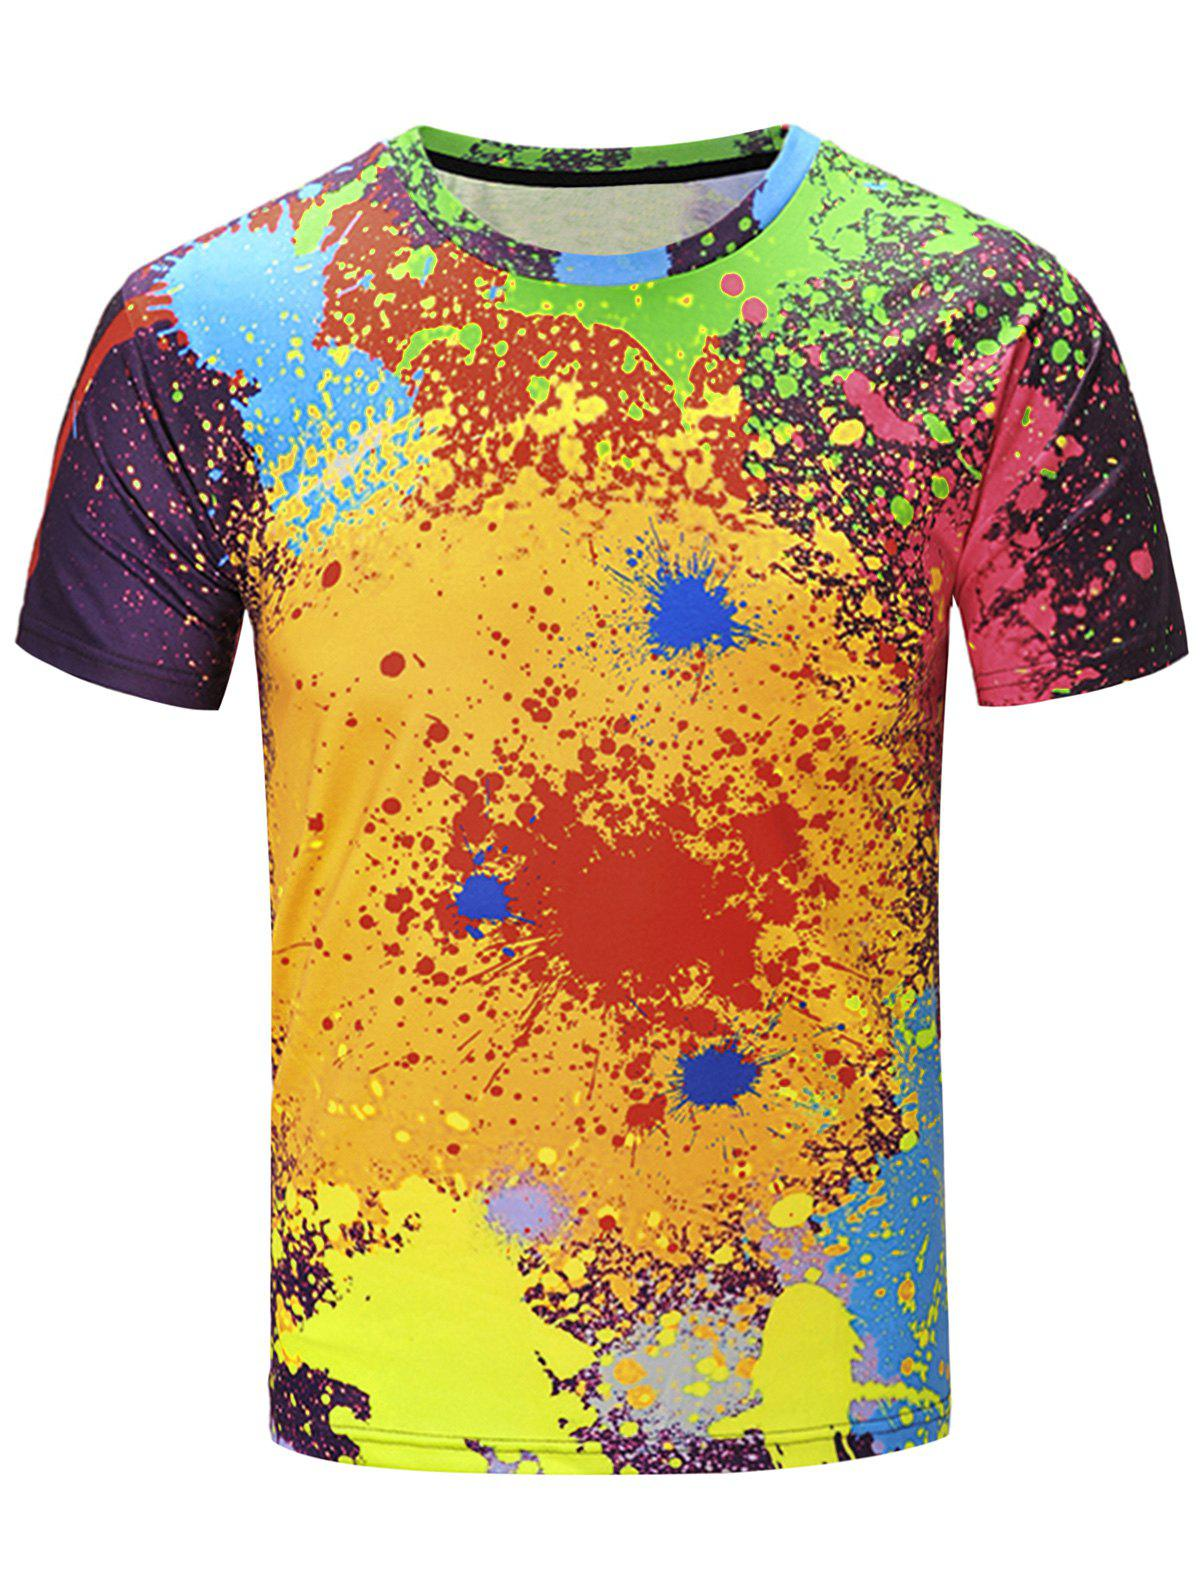 Short Sleeve Color Block Splatter Paint Print T-ShirtMEN<br><br>Size: 3XL; Color: COLORMIX; Style: Fashion; Material: Cotton,Polyester; Sleeve Length: Short; Collar: Crew Neck; Embellishment: 3D Print; Pattern Type: Print; Weight: 0.2260kg; Package Contents: 1 x T-Shirt;